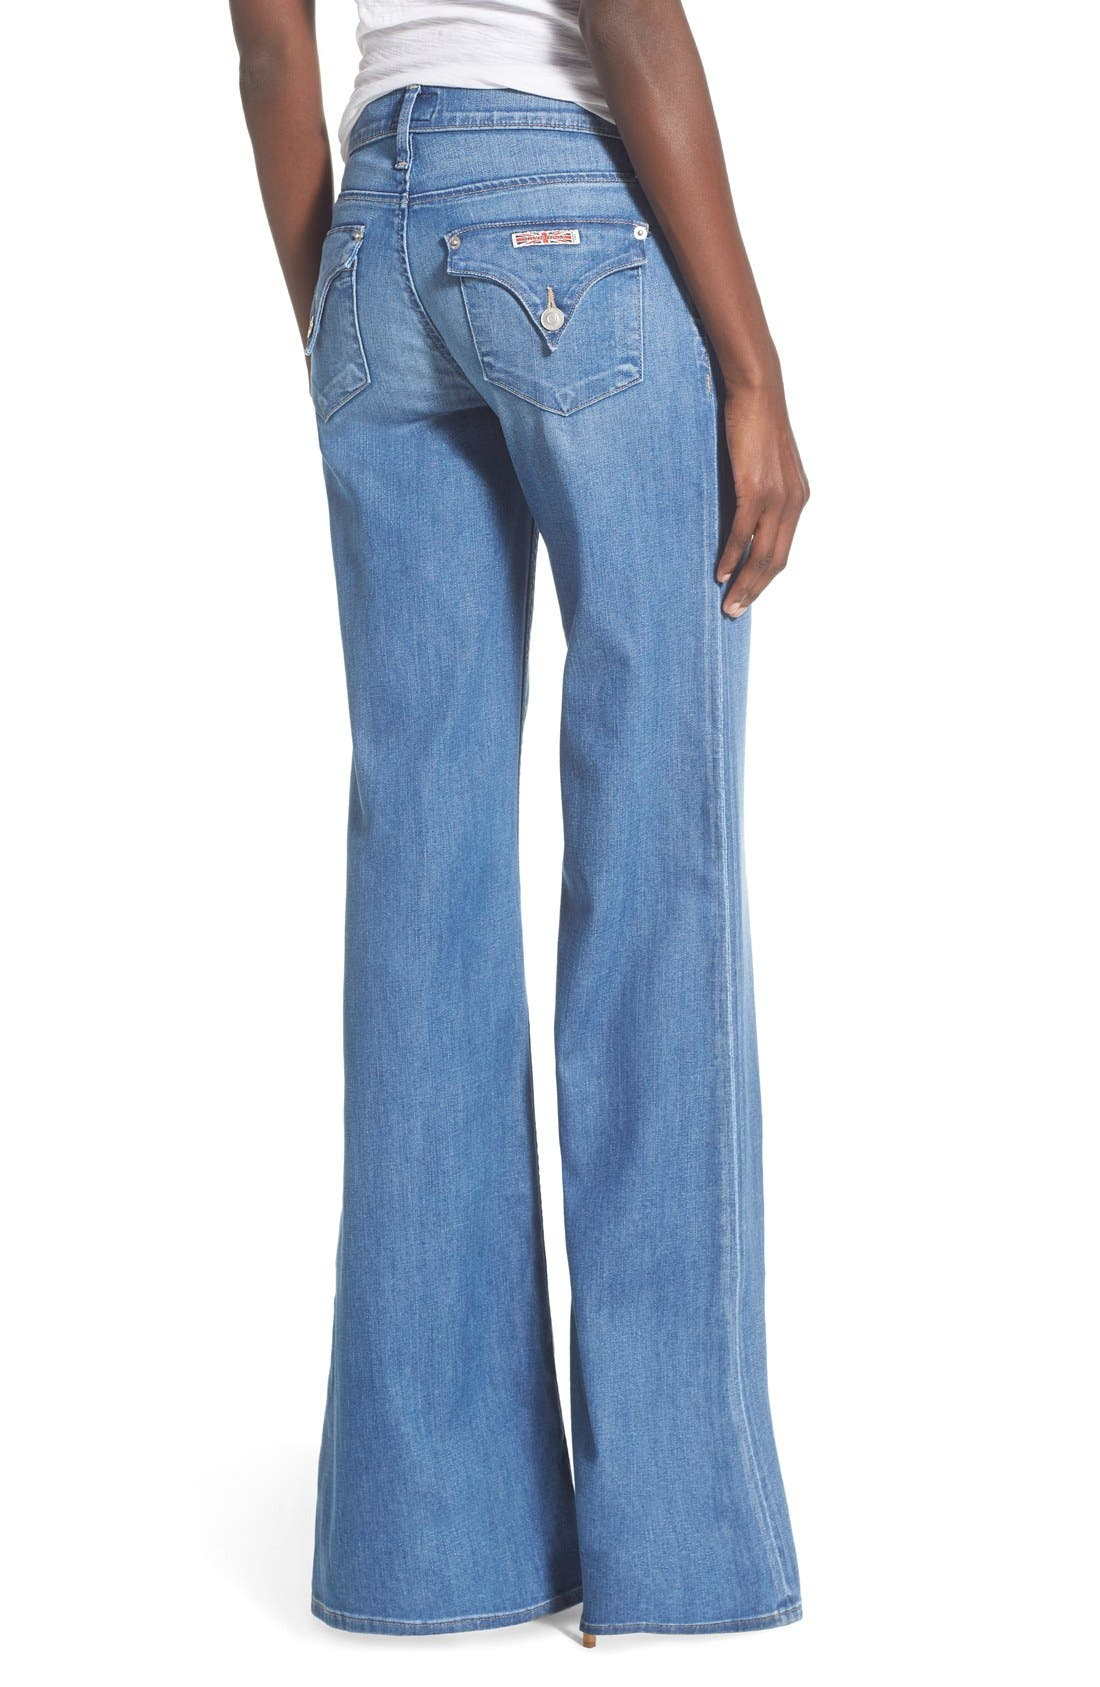 'Brooke' Wide Leg Jeans,                             Alternate thumbnail 2, color,                             Nightingale